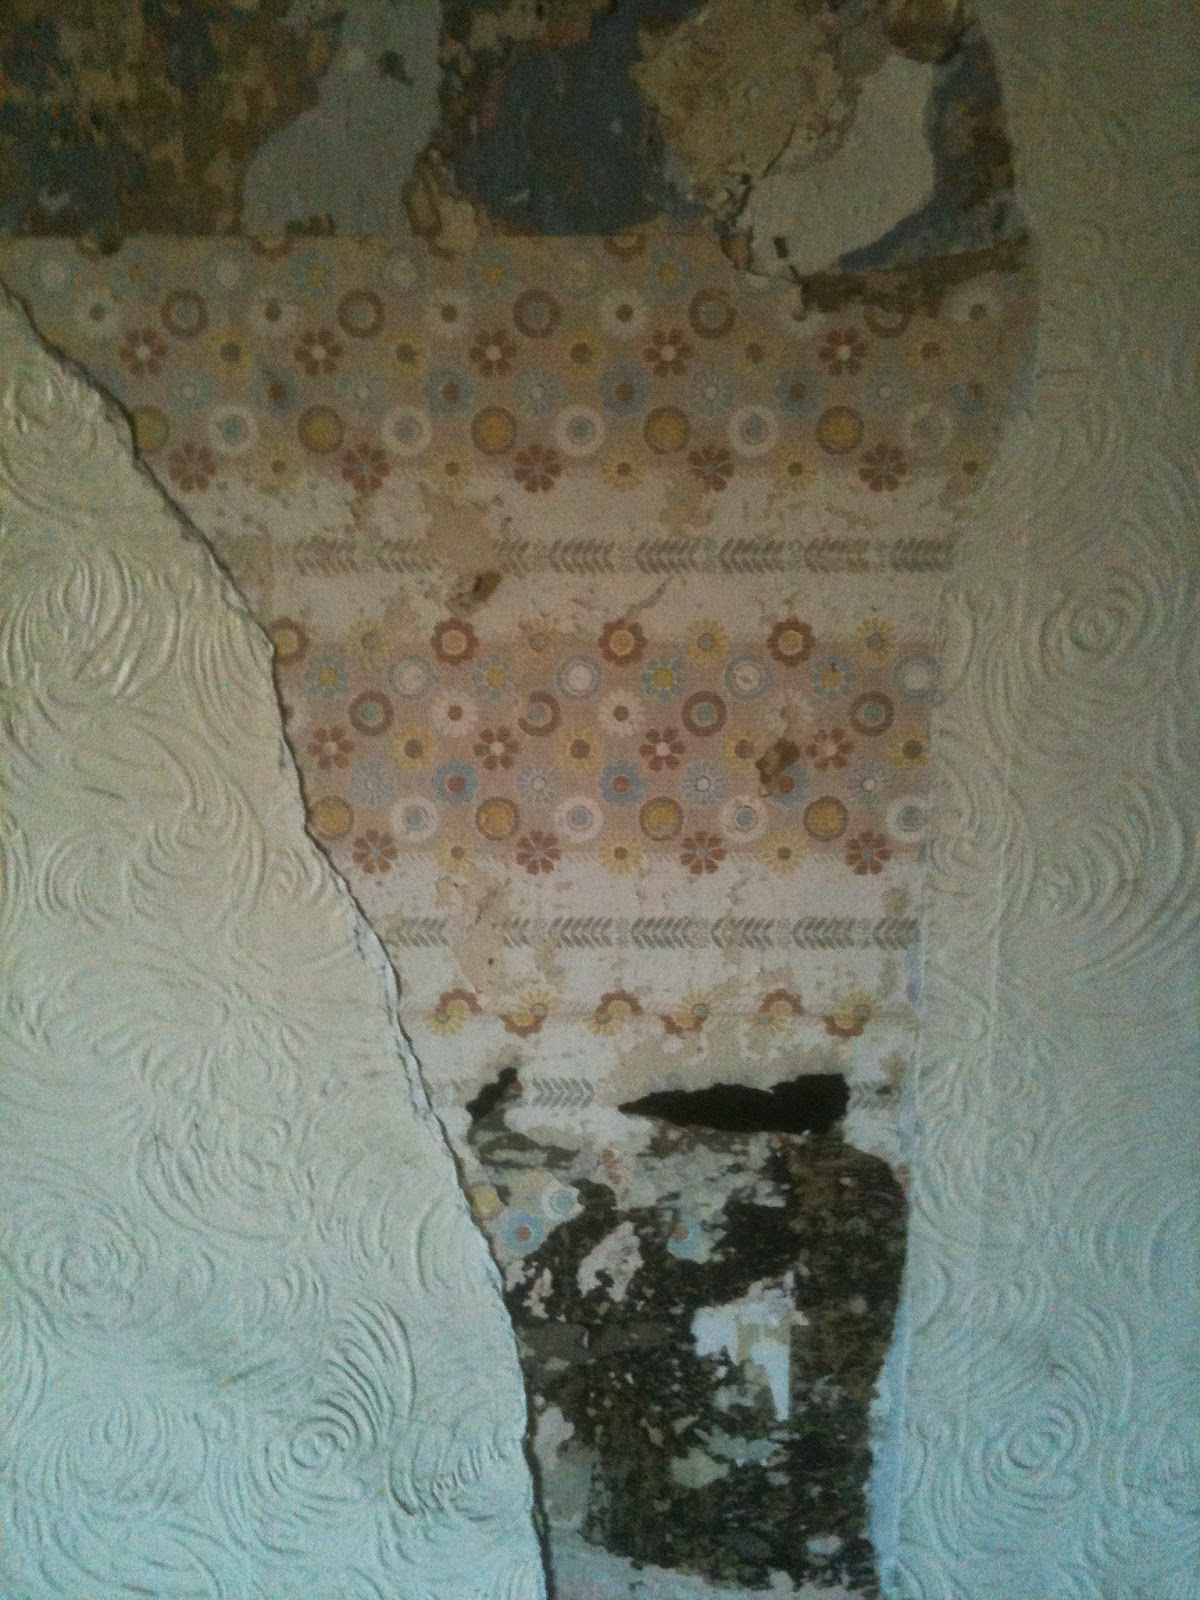 Wallpaper, stripping back through time #lifeonpigrow